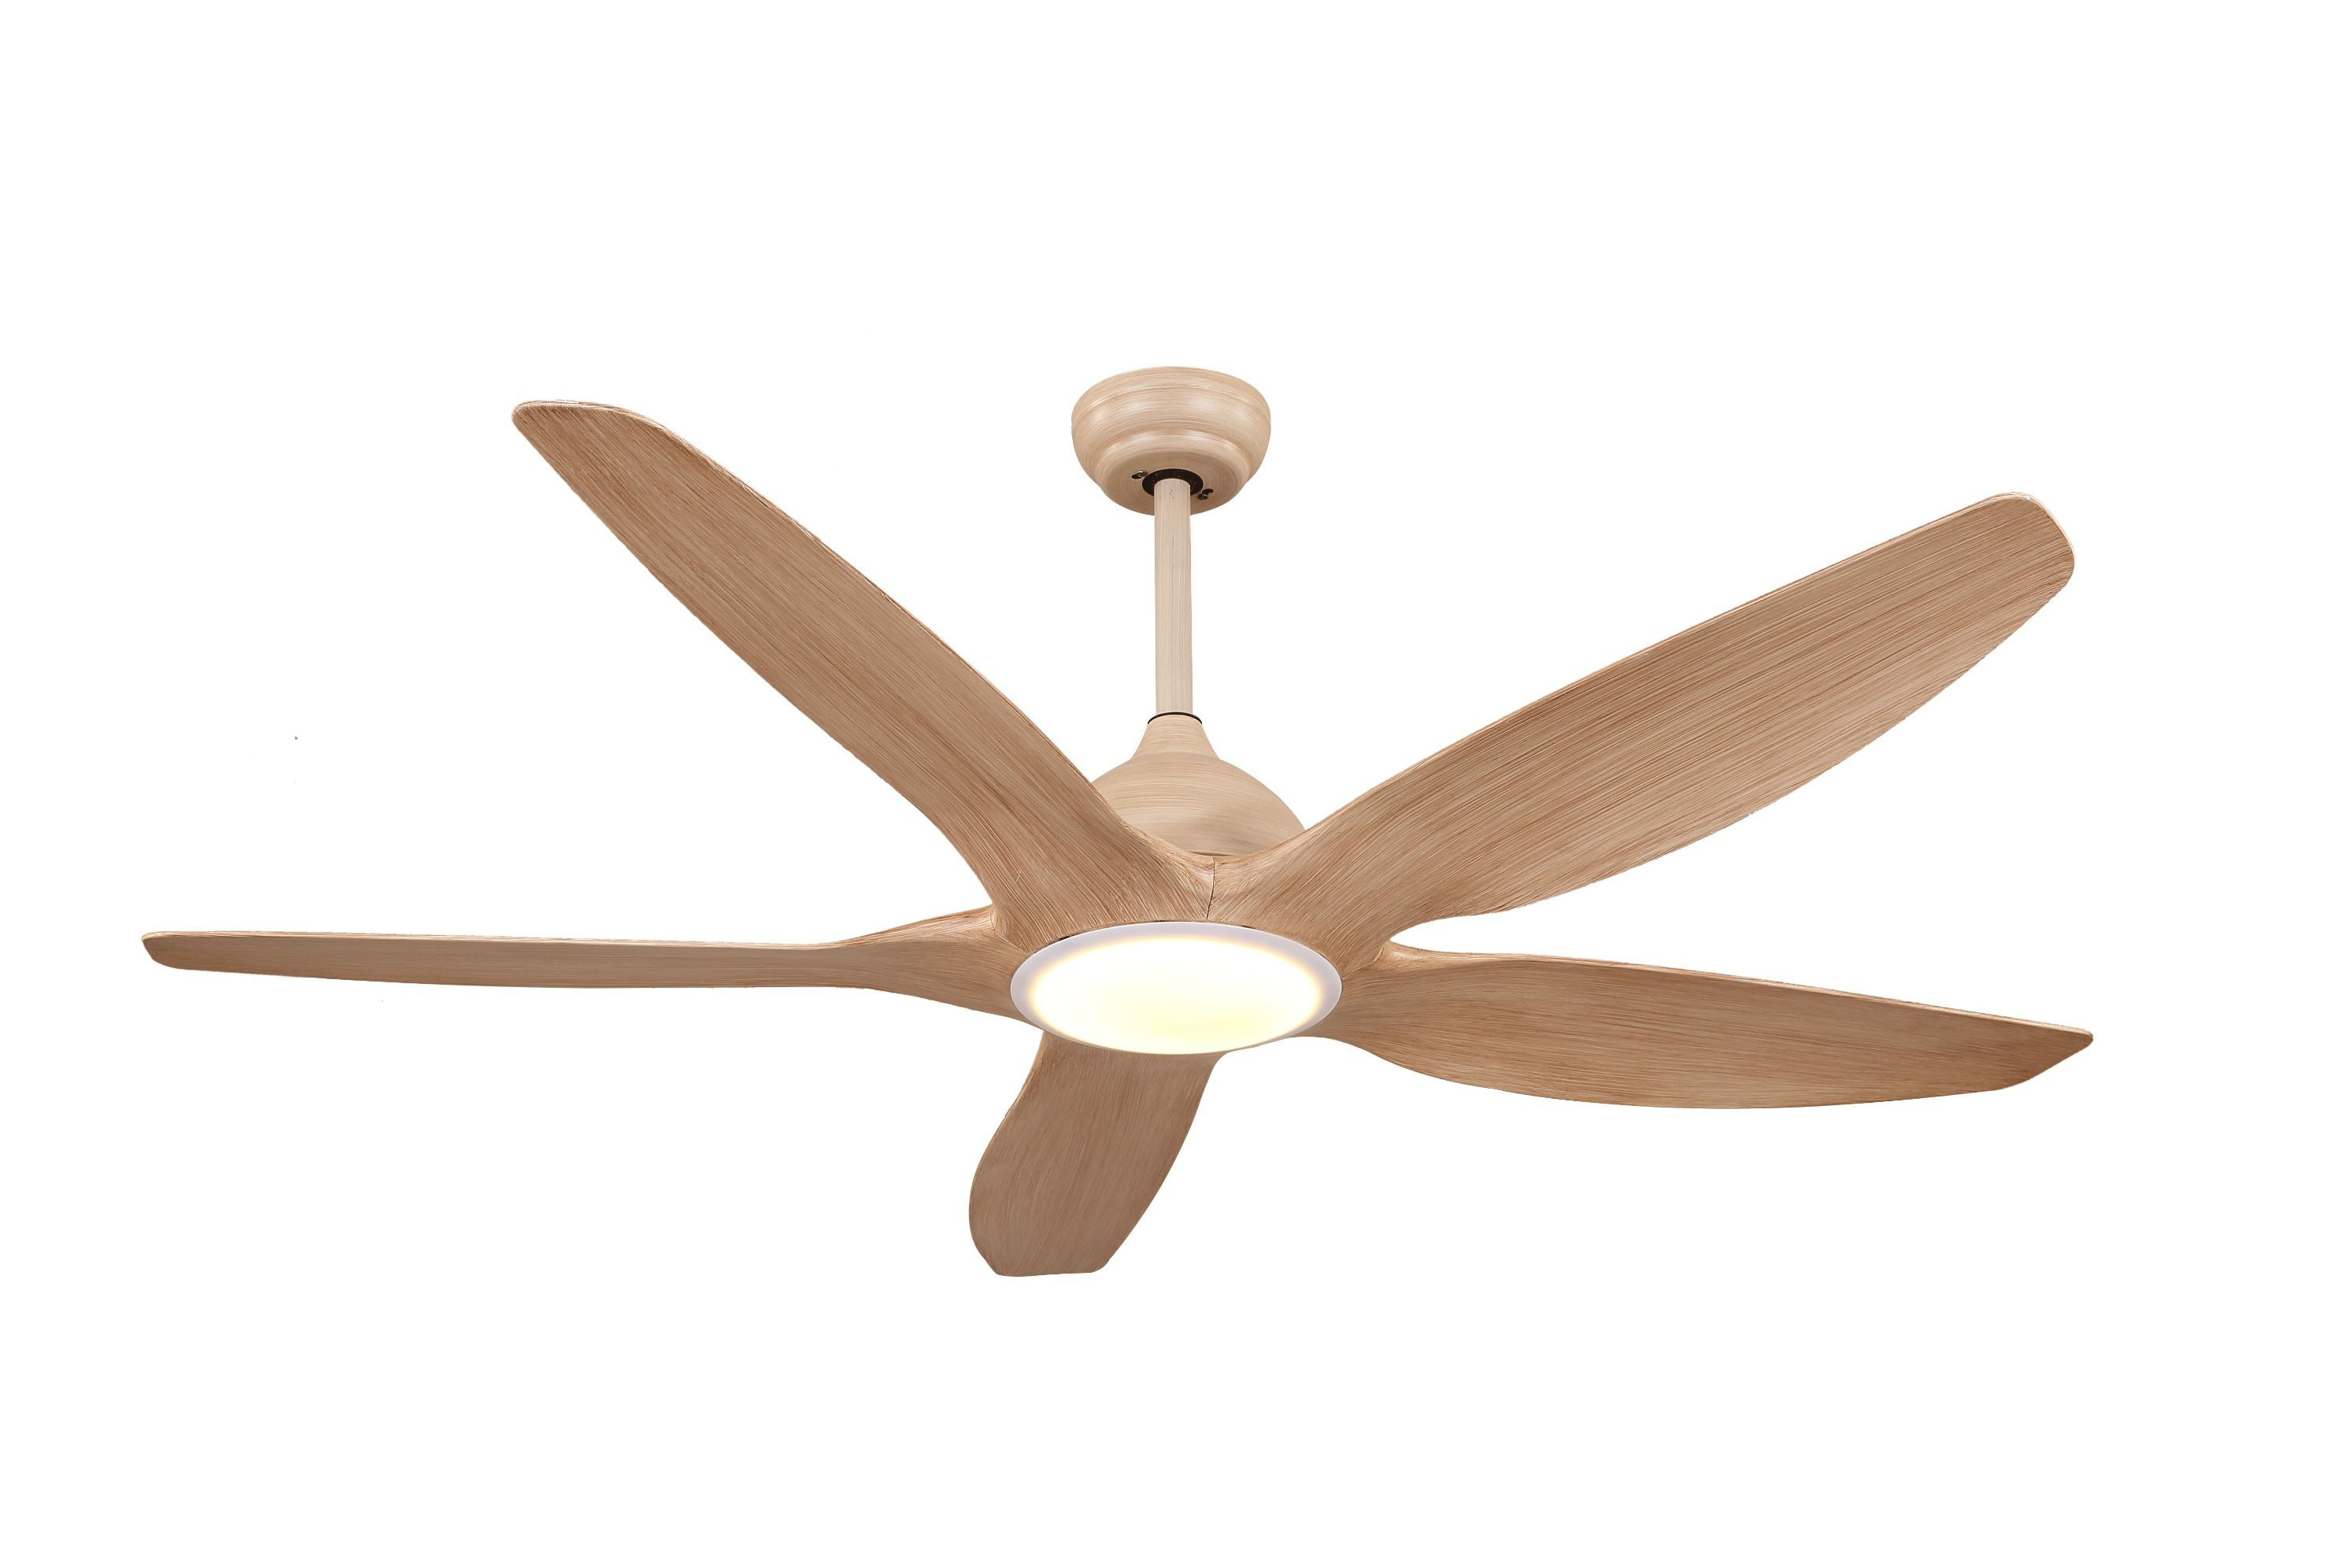 62 Inch High Quality Ac Dc Ceiling Fan With Lights With 5 Blades Form China Supplier China Ceiling Fan And Dc Fan Price